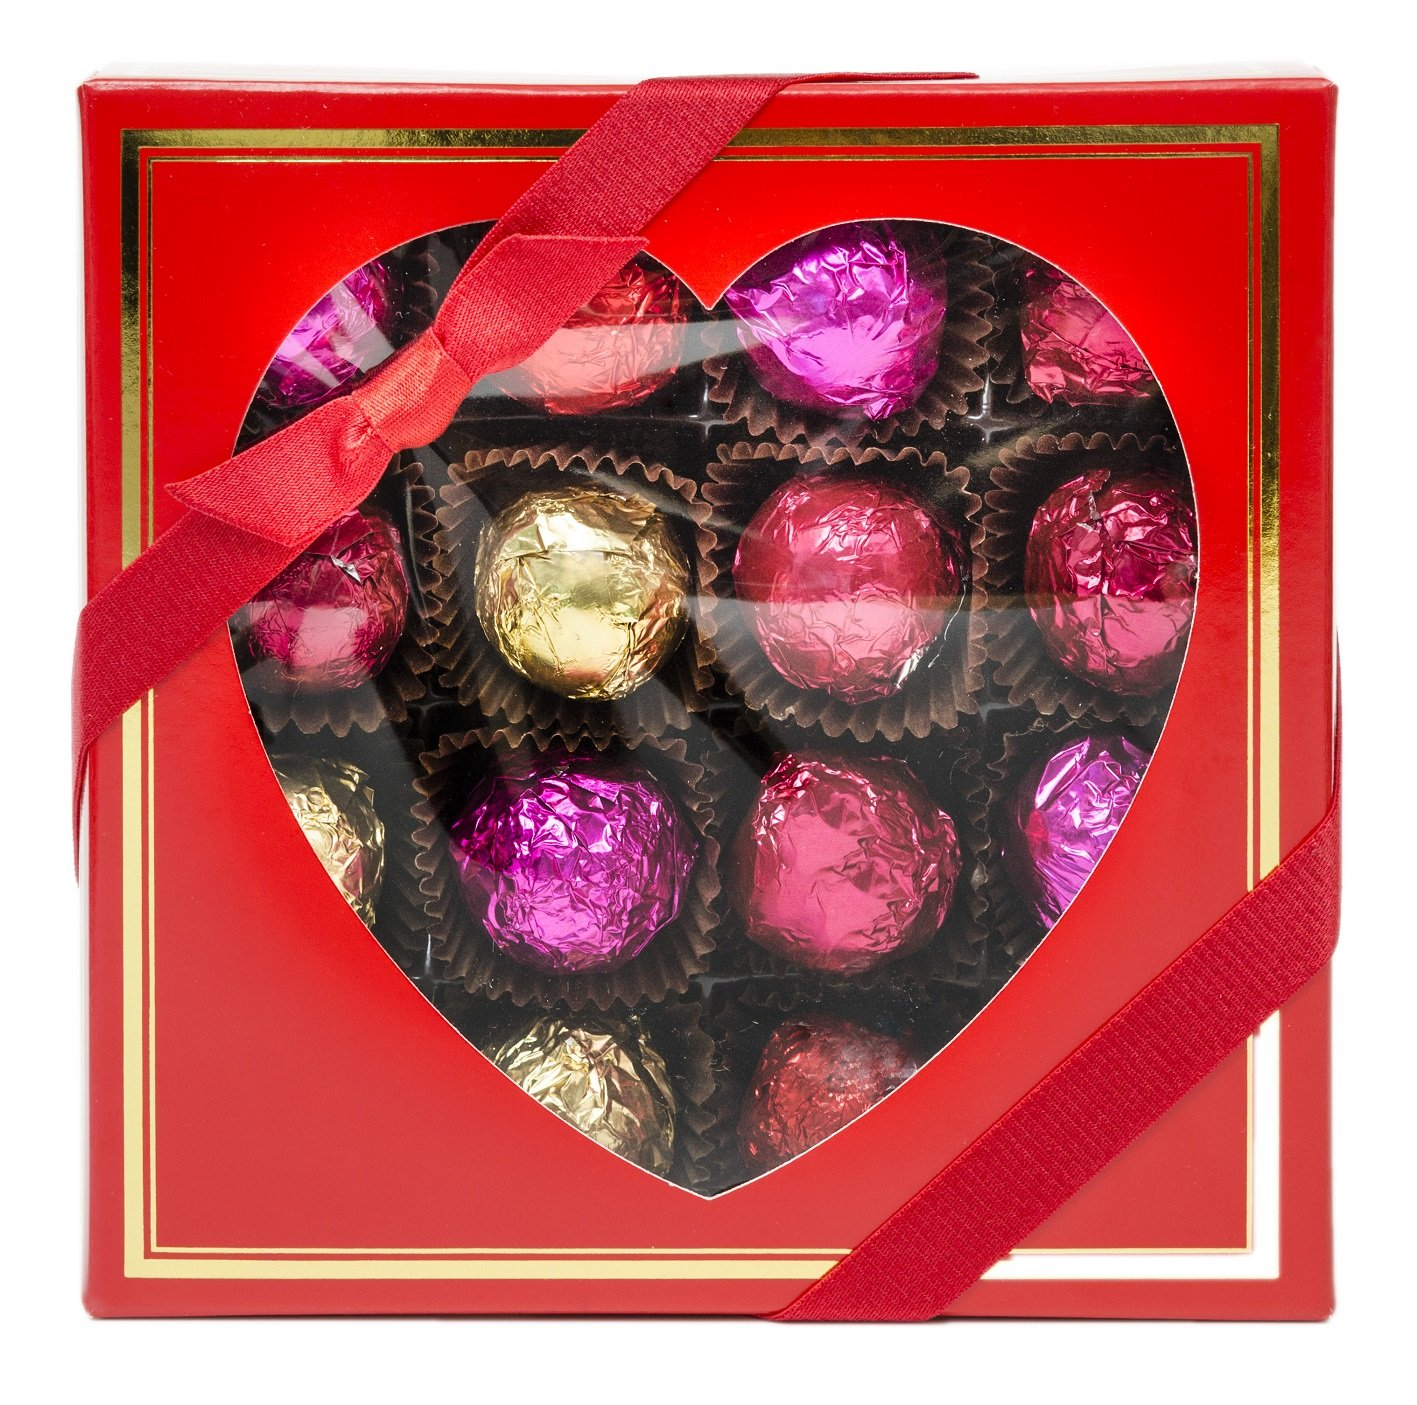 Truffles in Red Box with Heart Window and Gold Border, 16pc